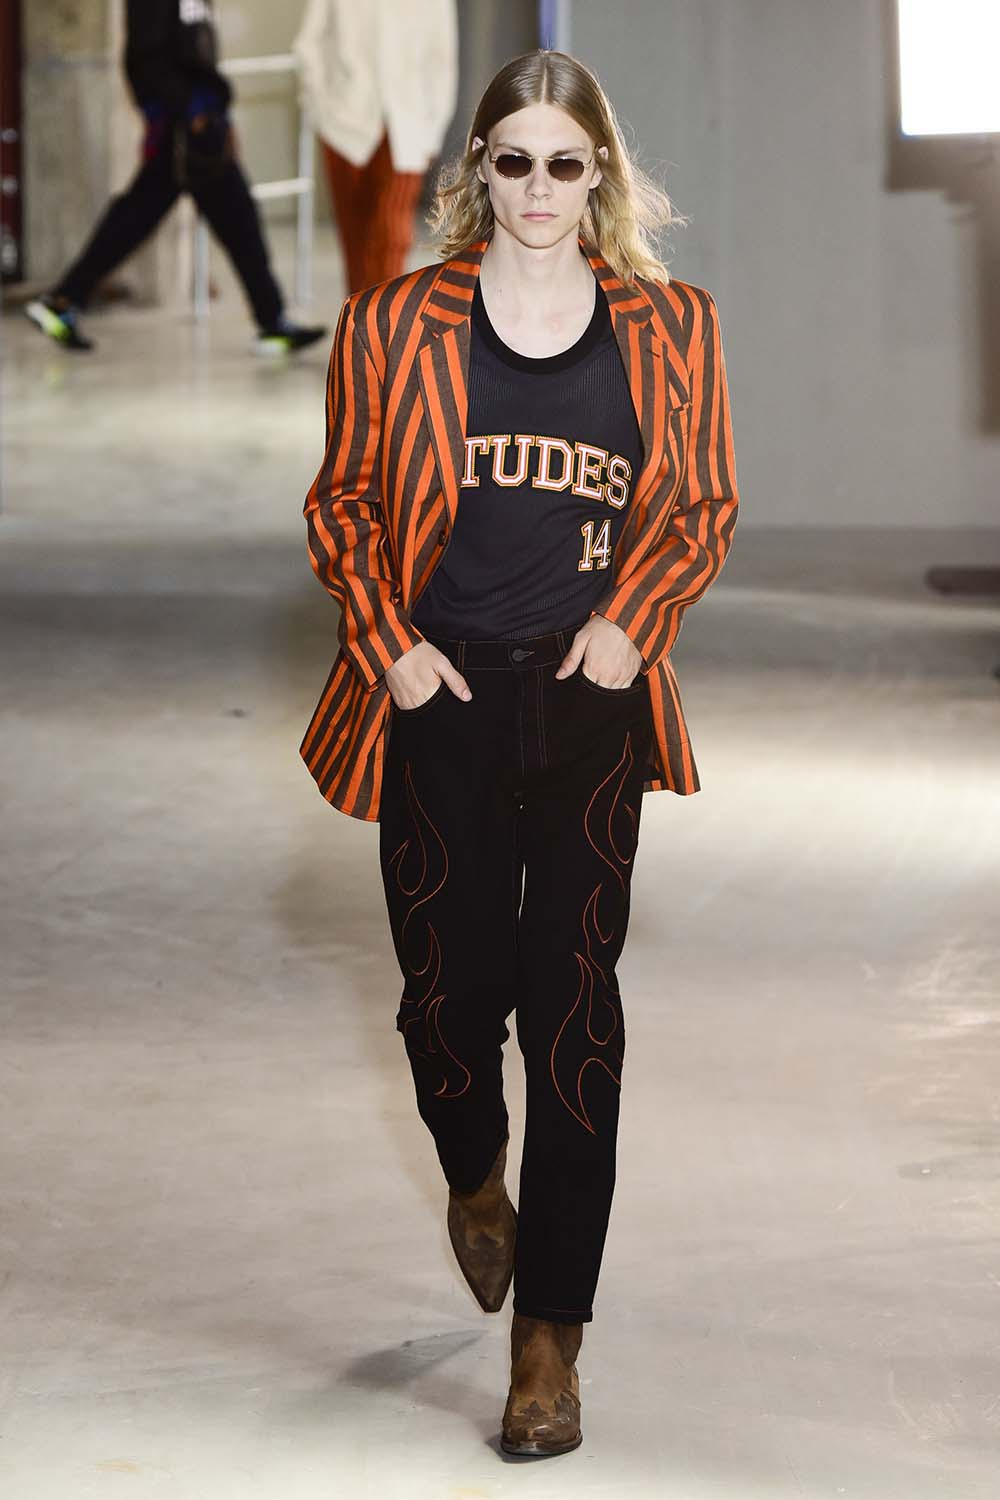 Etudes Paris Fashion Week Men's SS19 - Sagaboi - Look 28